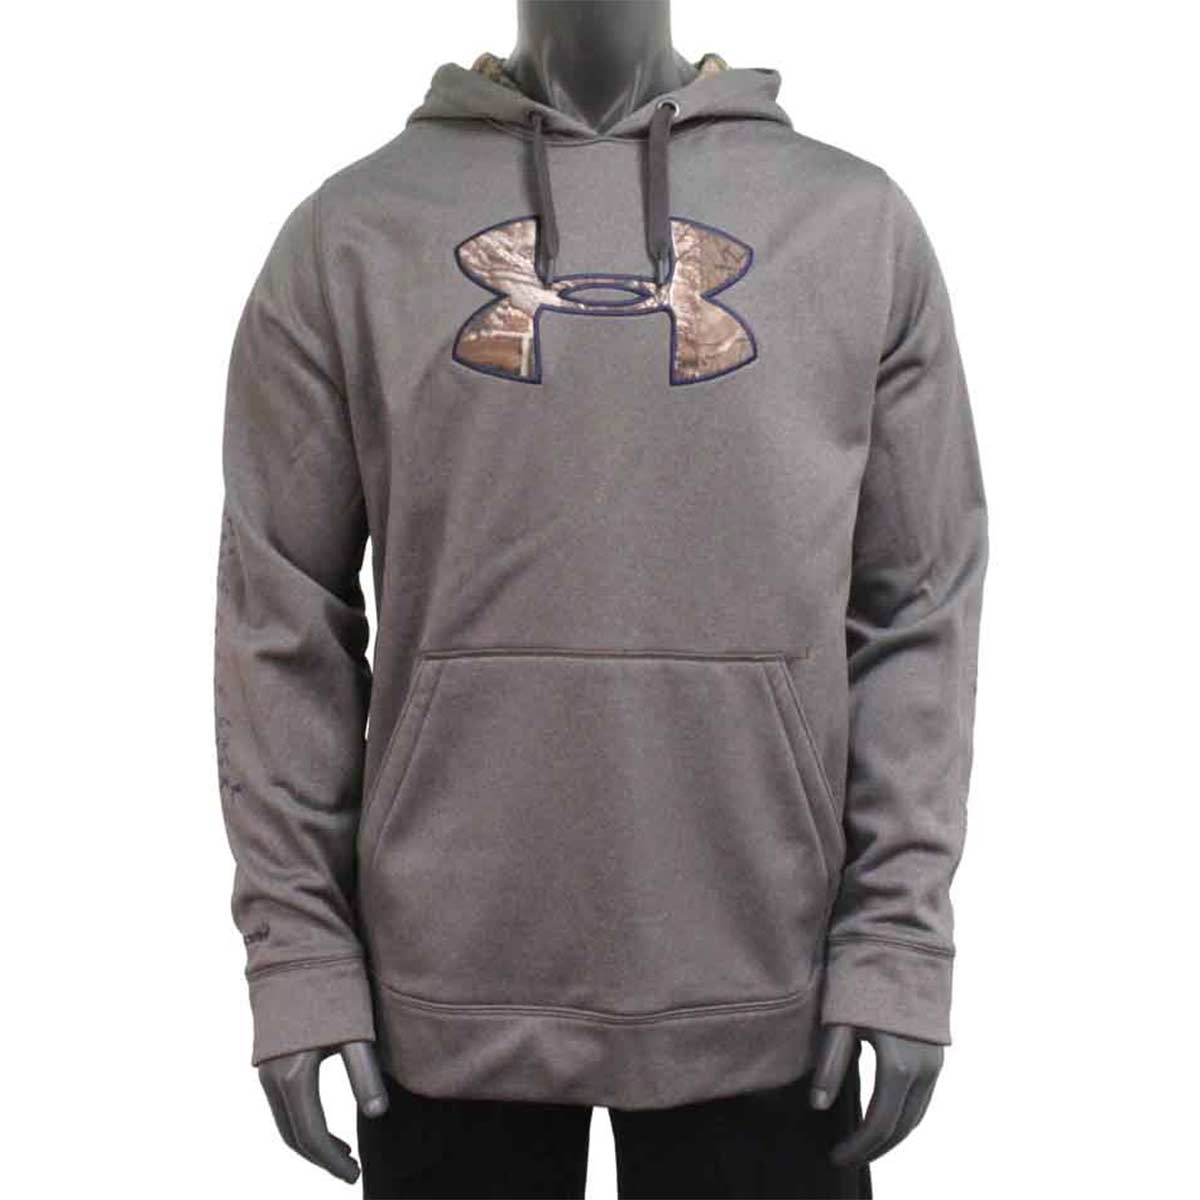 Under Armour Storm Caliber Men's Hunting Hoodie, Carbon Heather_1.jpg